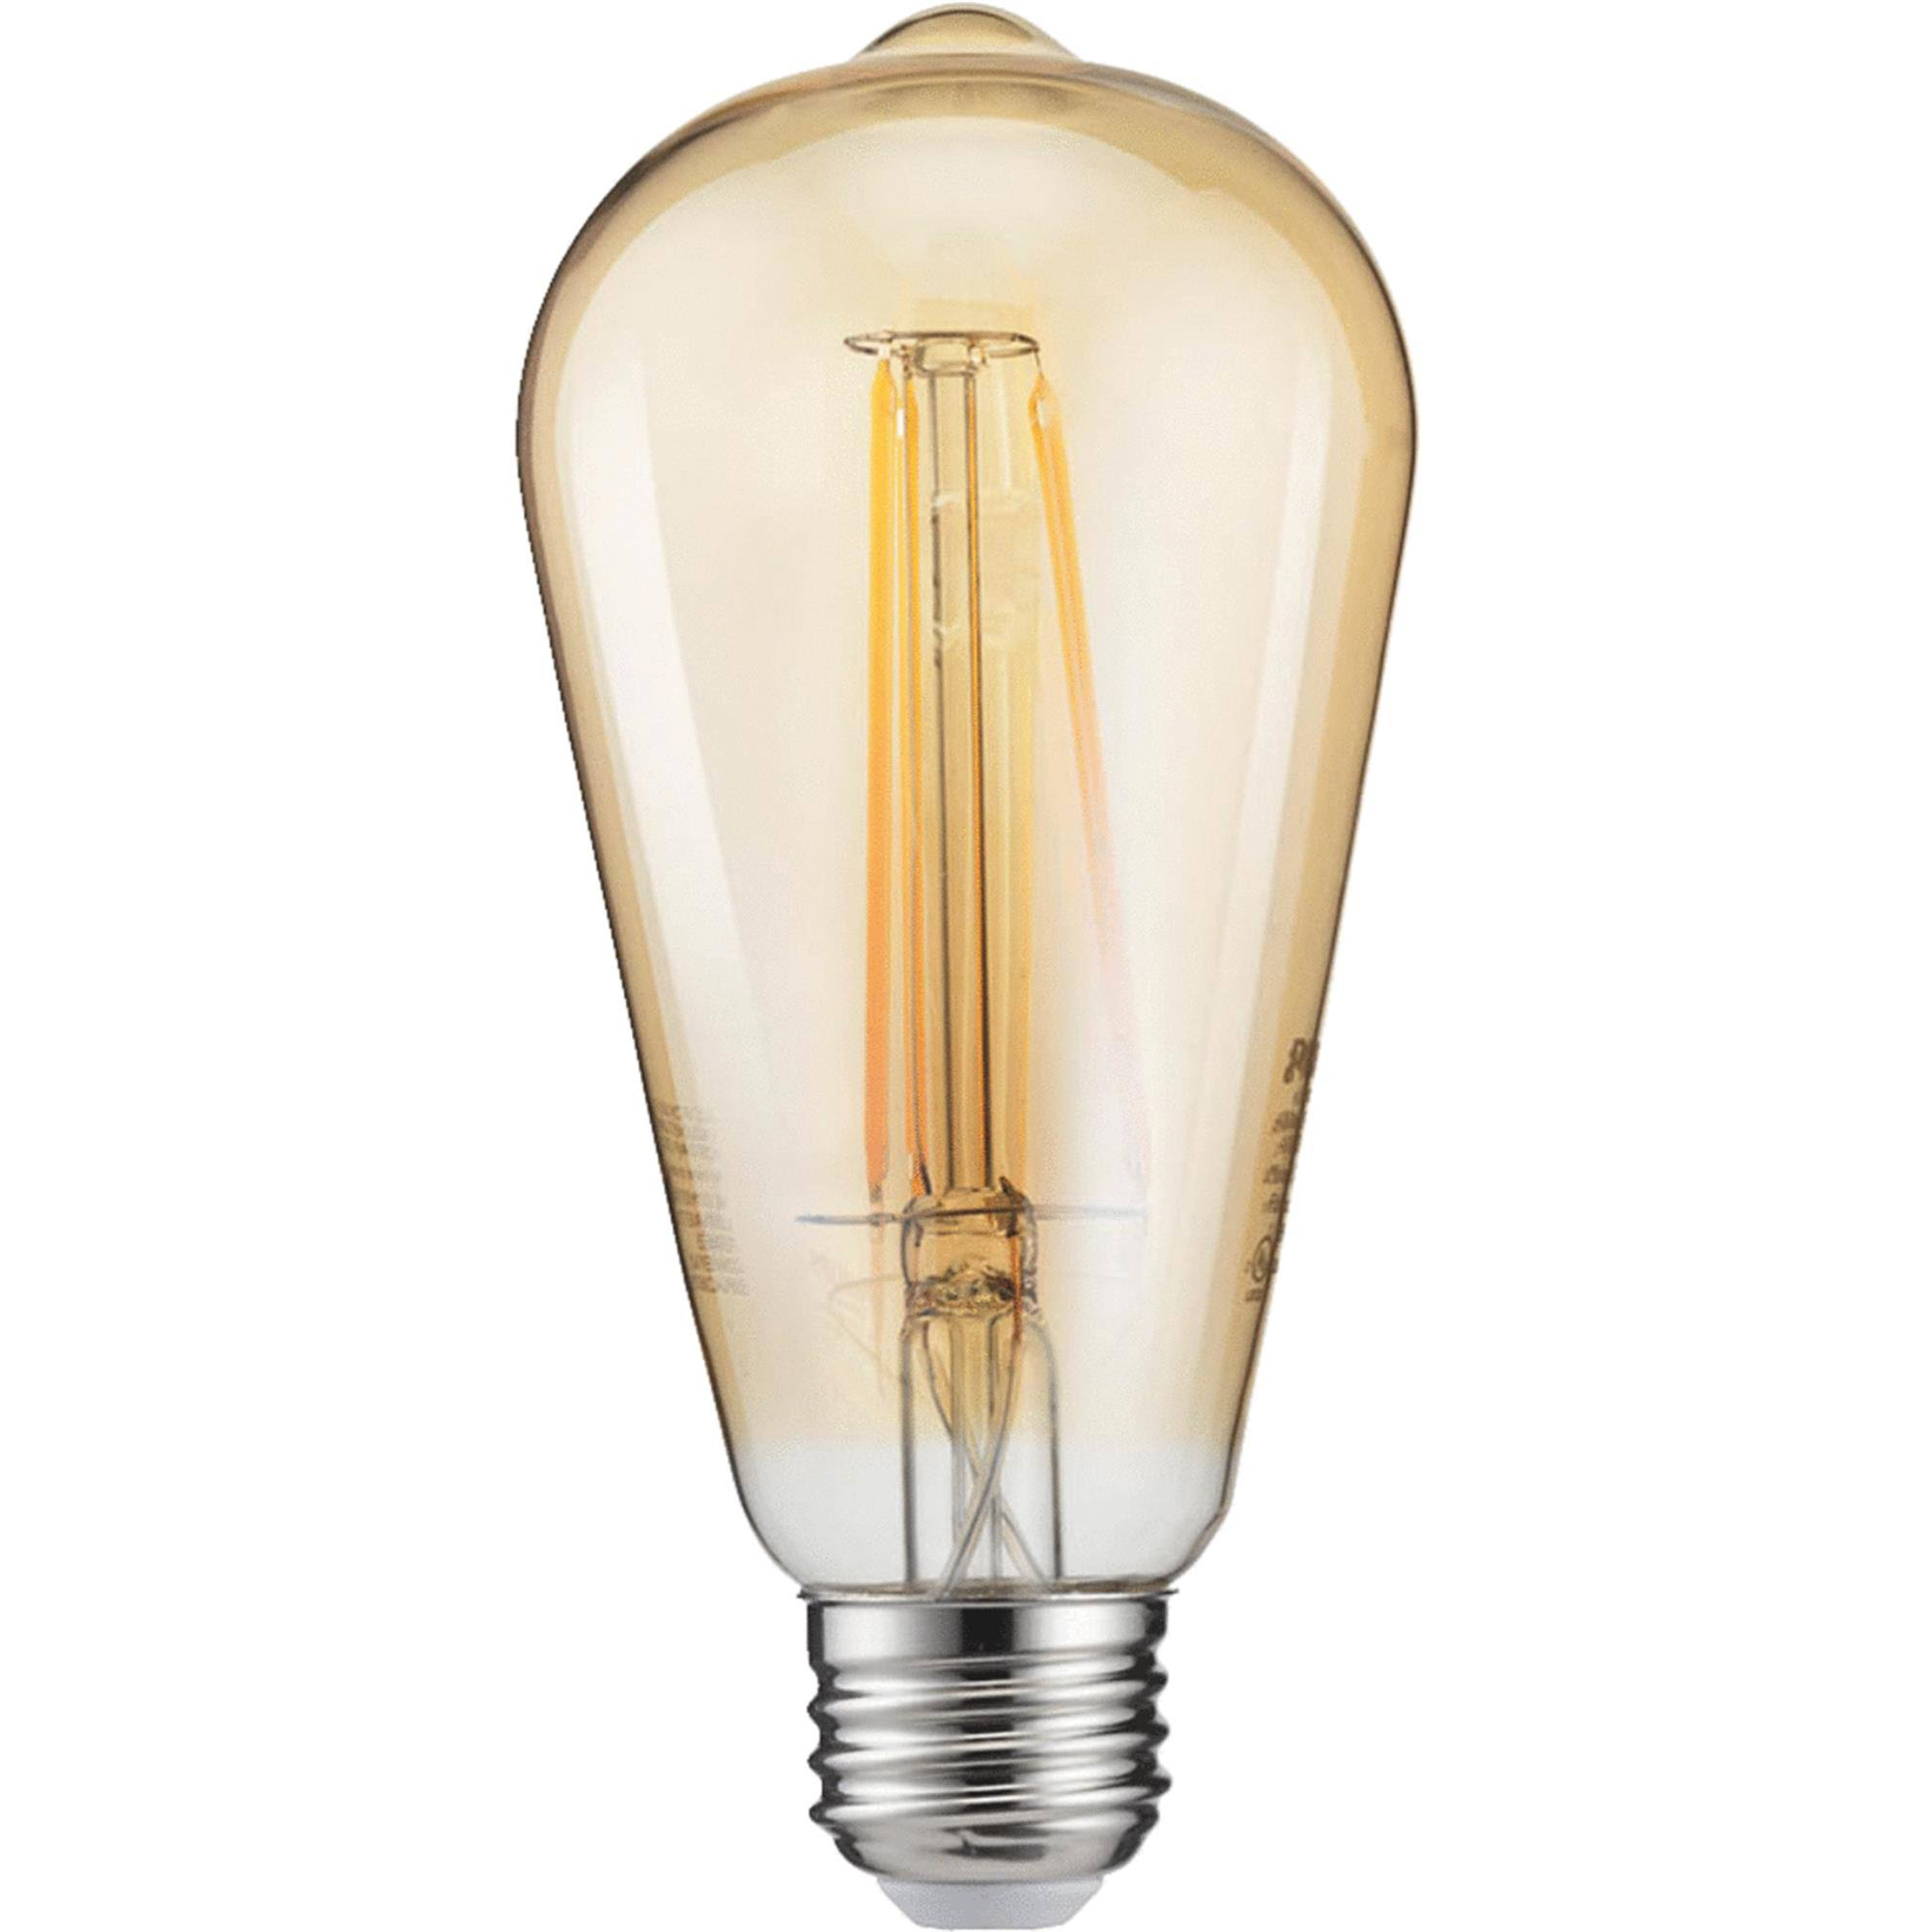 Philips E26 Decorative Led Bulb - Clear, 5W